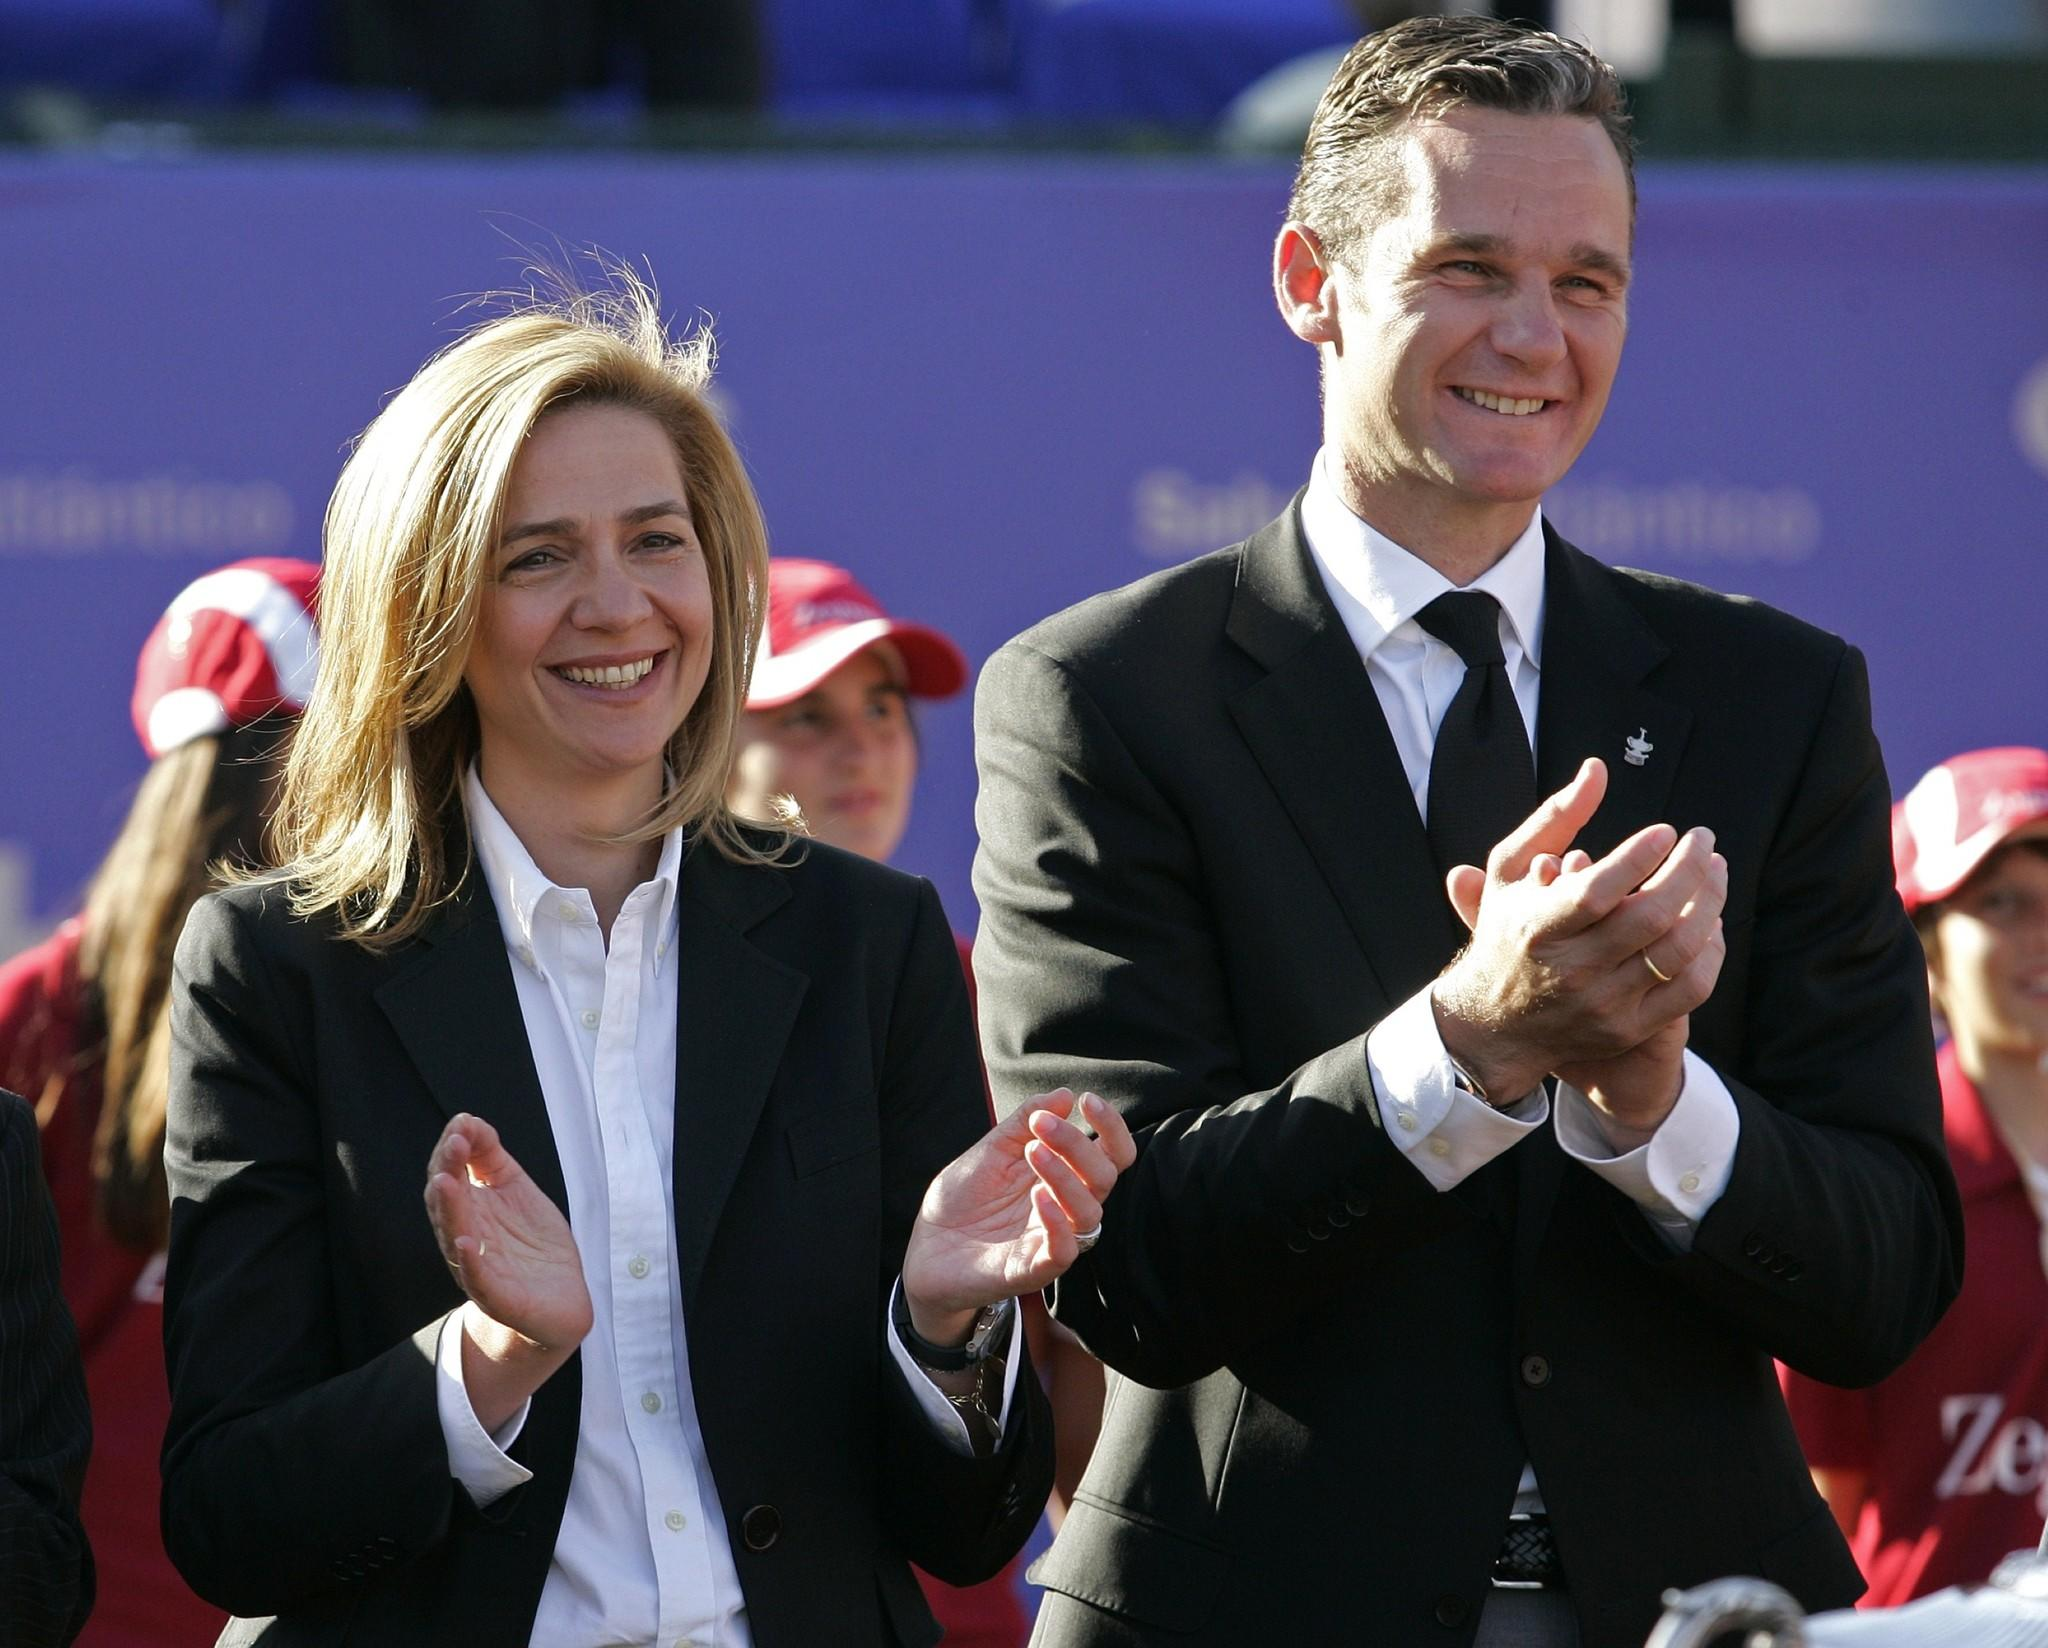 Spanish Princess Infanta Cristina (L) and her husband Inaki Urdangarin applaud after giving a trophy to Spanish Rafael Nadal (not pictured) after the final match of the Barcelona Open tennis tournament Conde de Godo on May 04, 2008 Barcelona. A judge will quiz Spanish King Juan Carlos's youngest daughter Cristina on February 8, over fraud allegations in a corruption scandal linked to the business affairs of Cristina's husband, former Olympic handball player Inaki Urdangarin, 46.